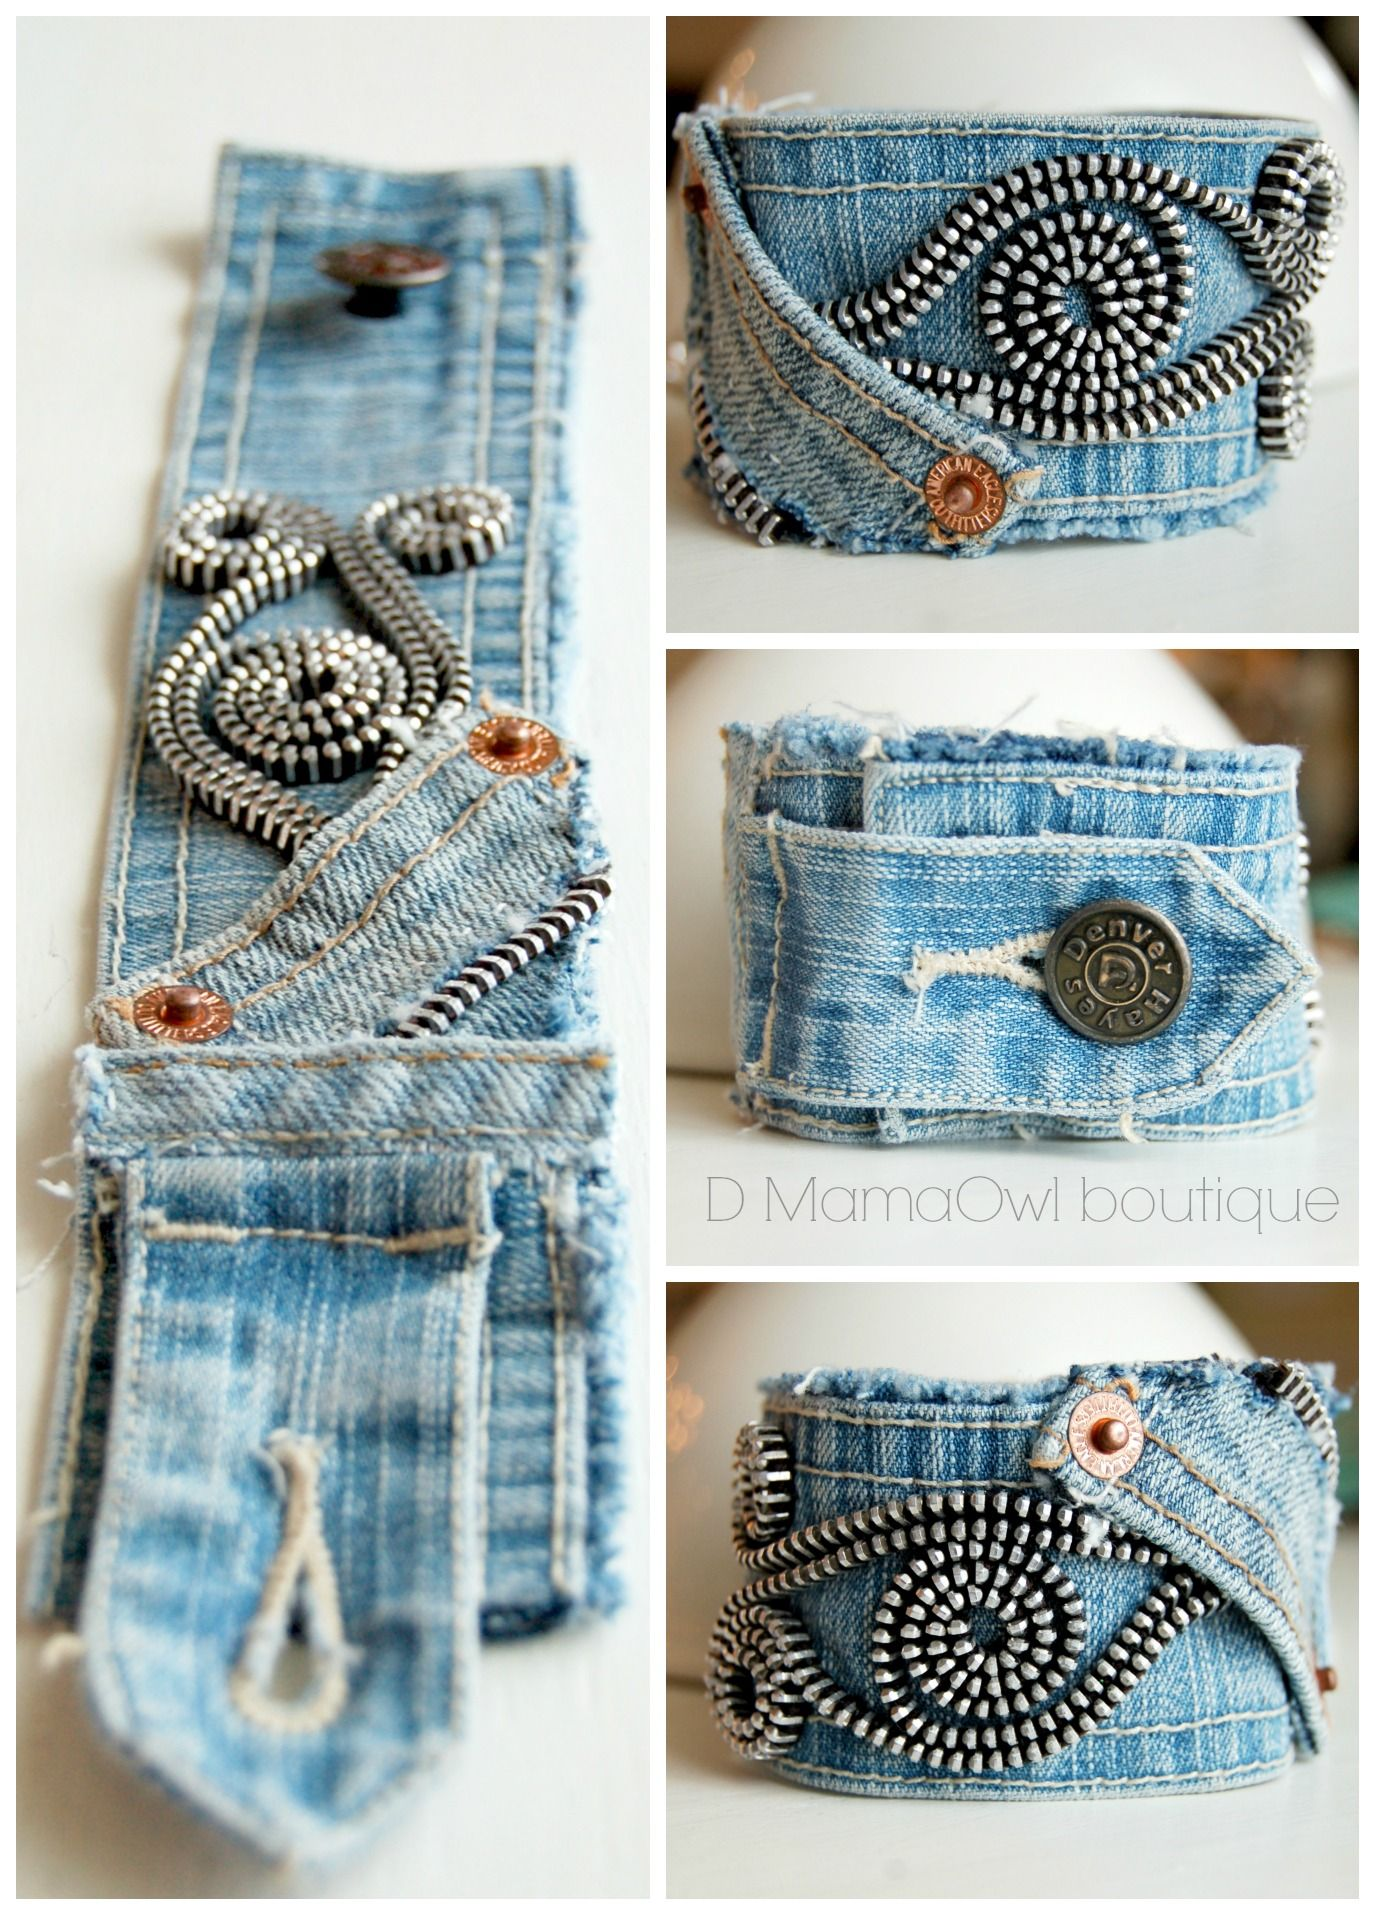 What to do with old jeans